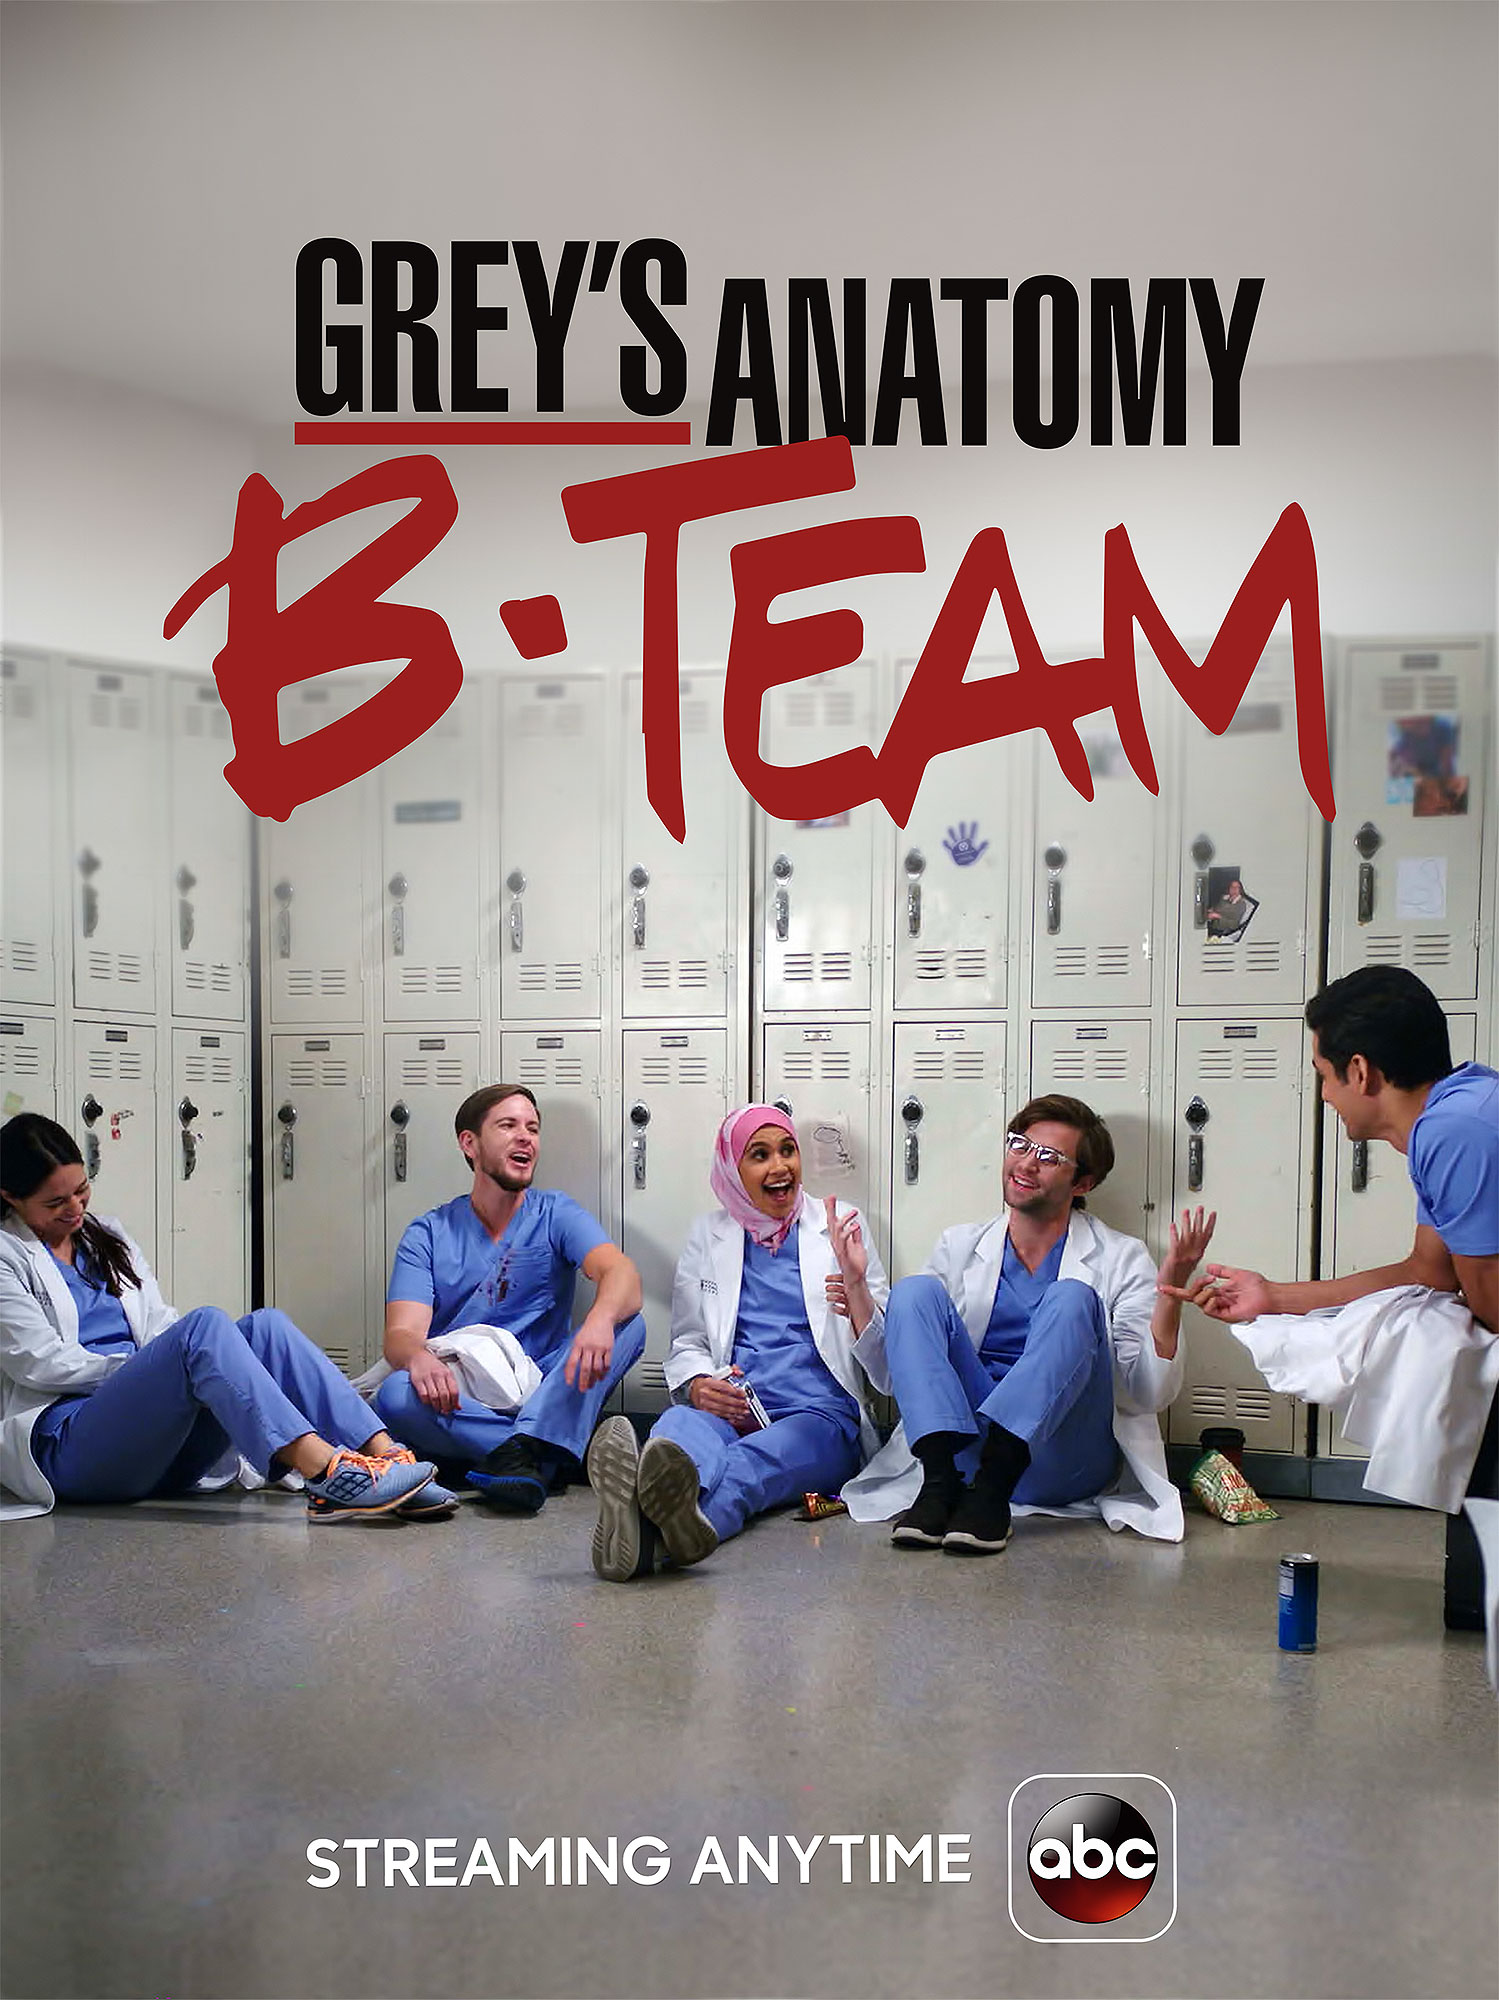 Grey\'s Anatomy: B-Team (TV Series 2018– ) - IMDb